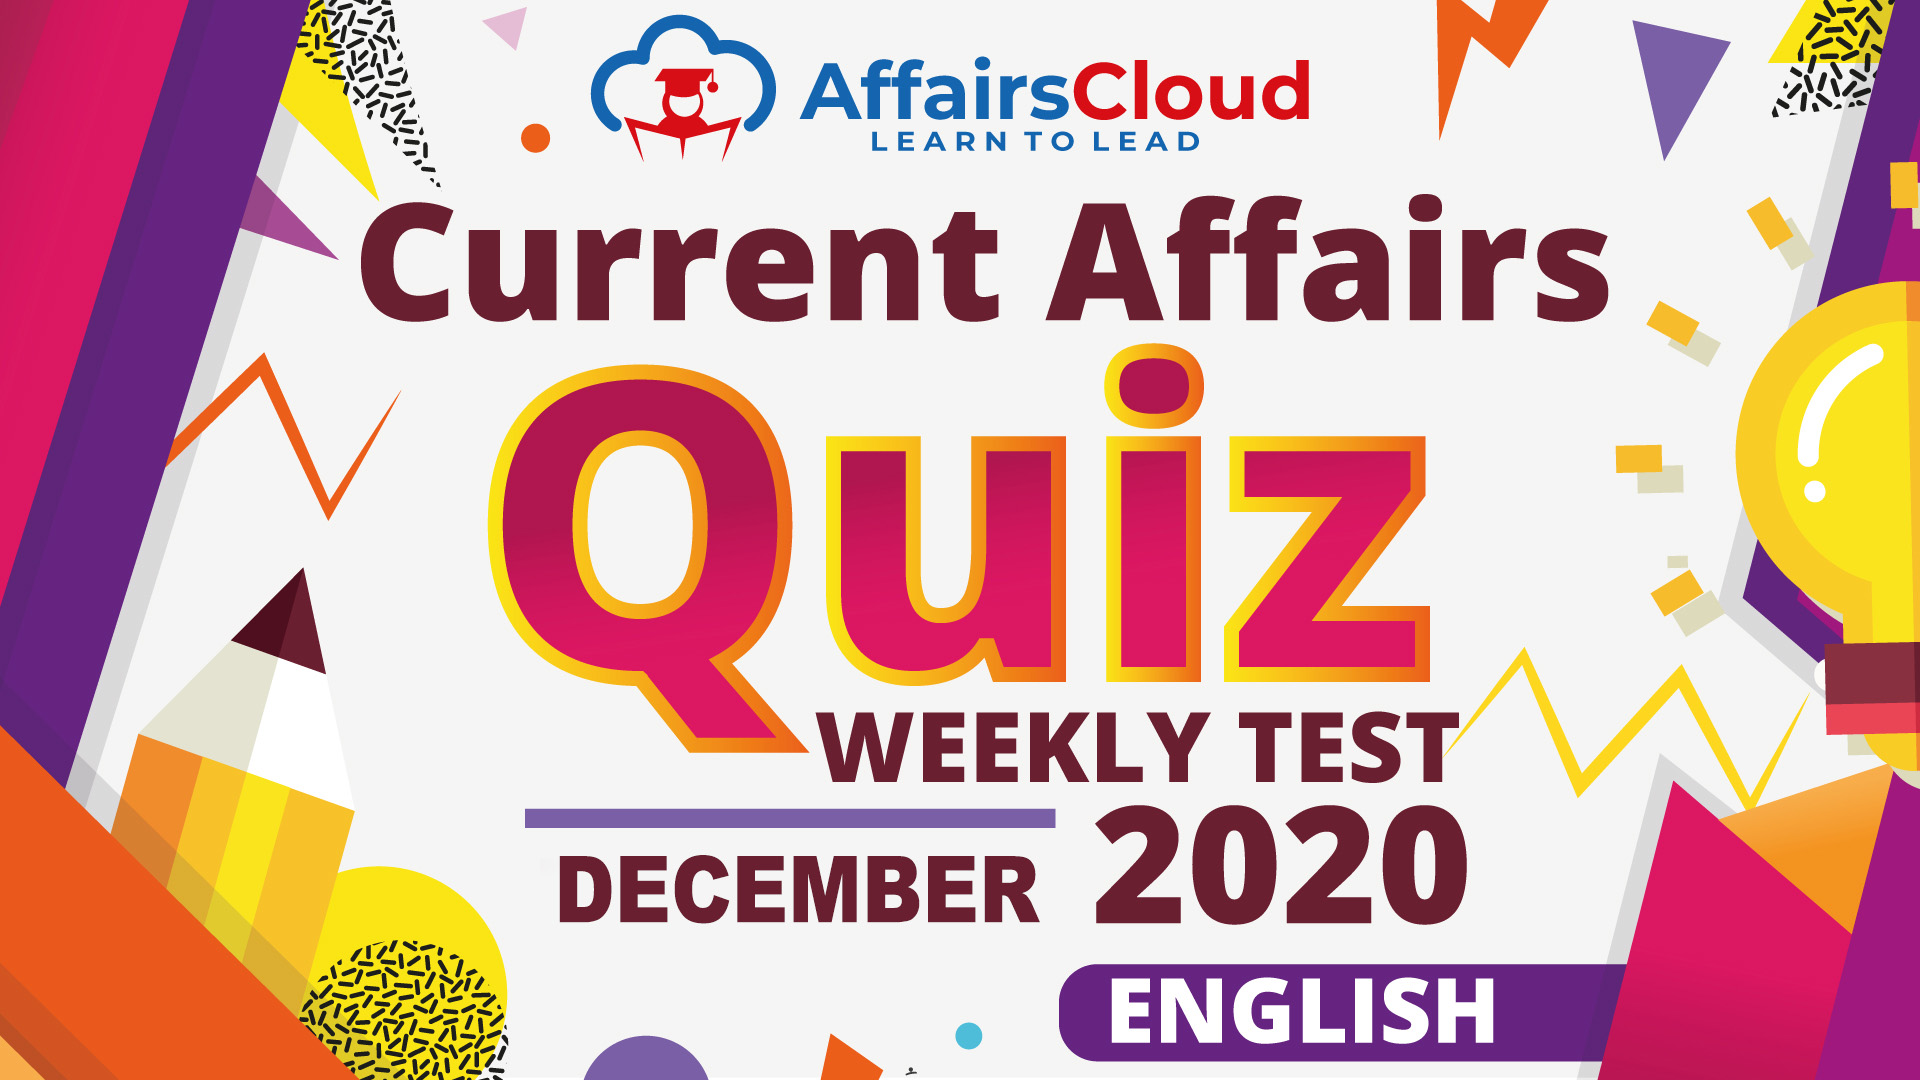 Current Affairs Weekly Quiz December 2020 English